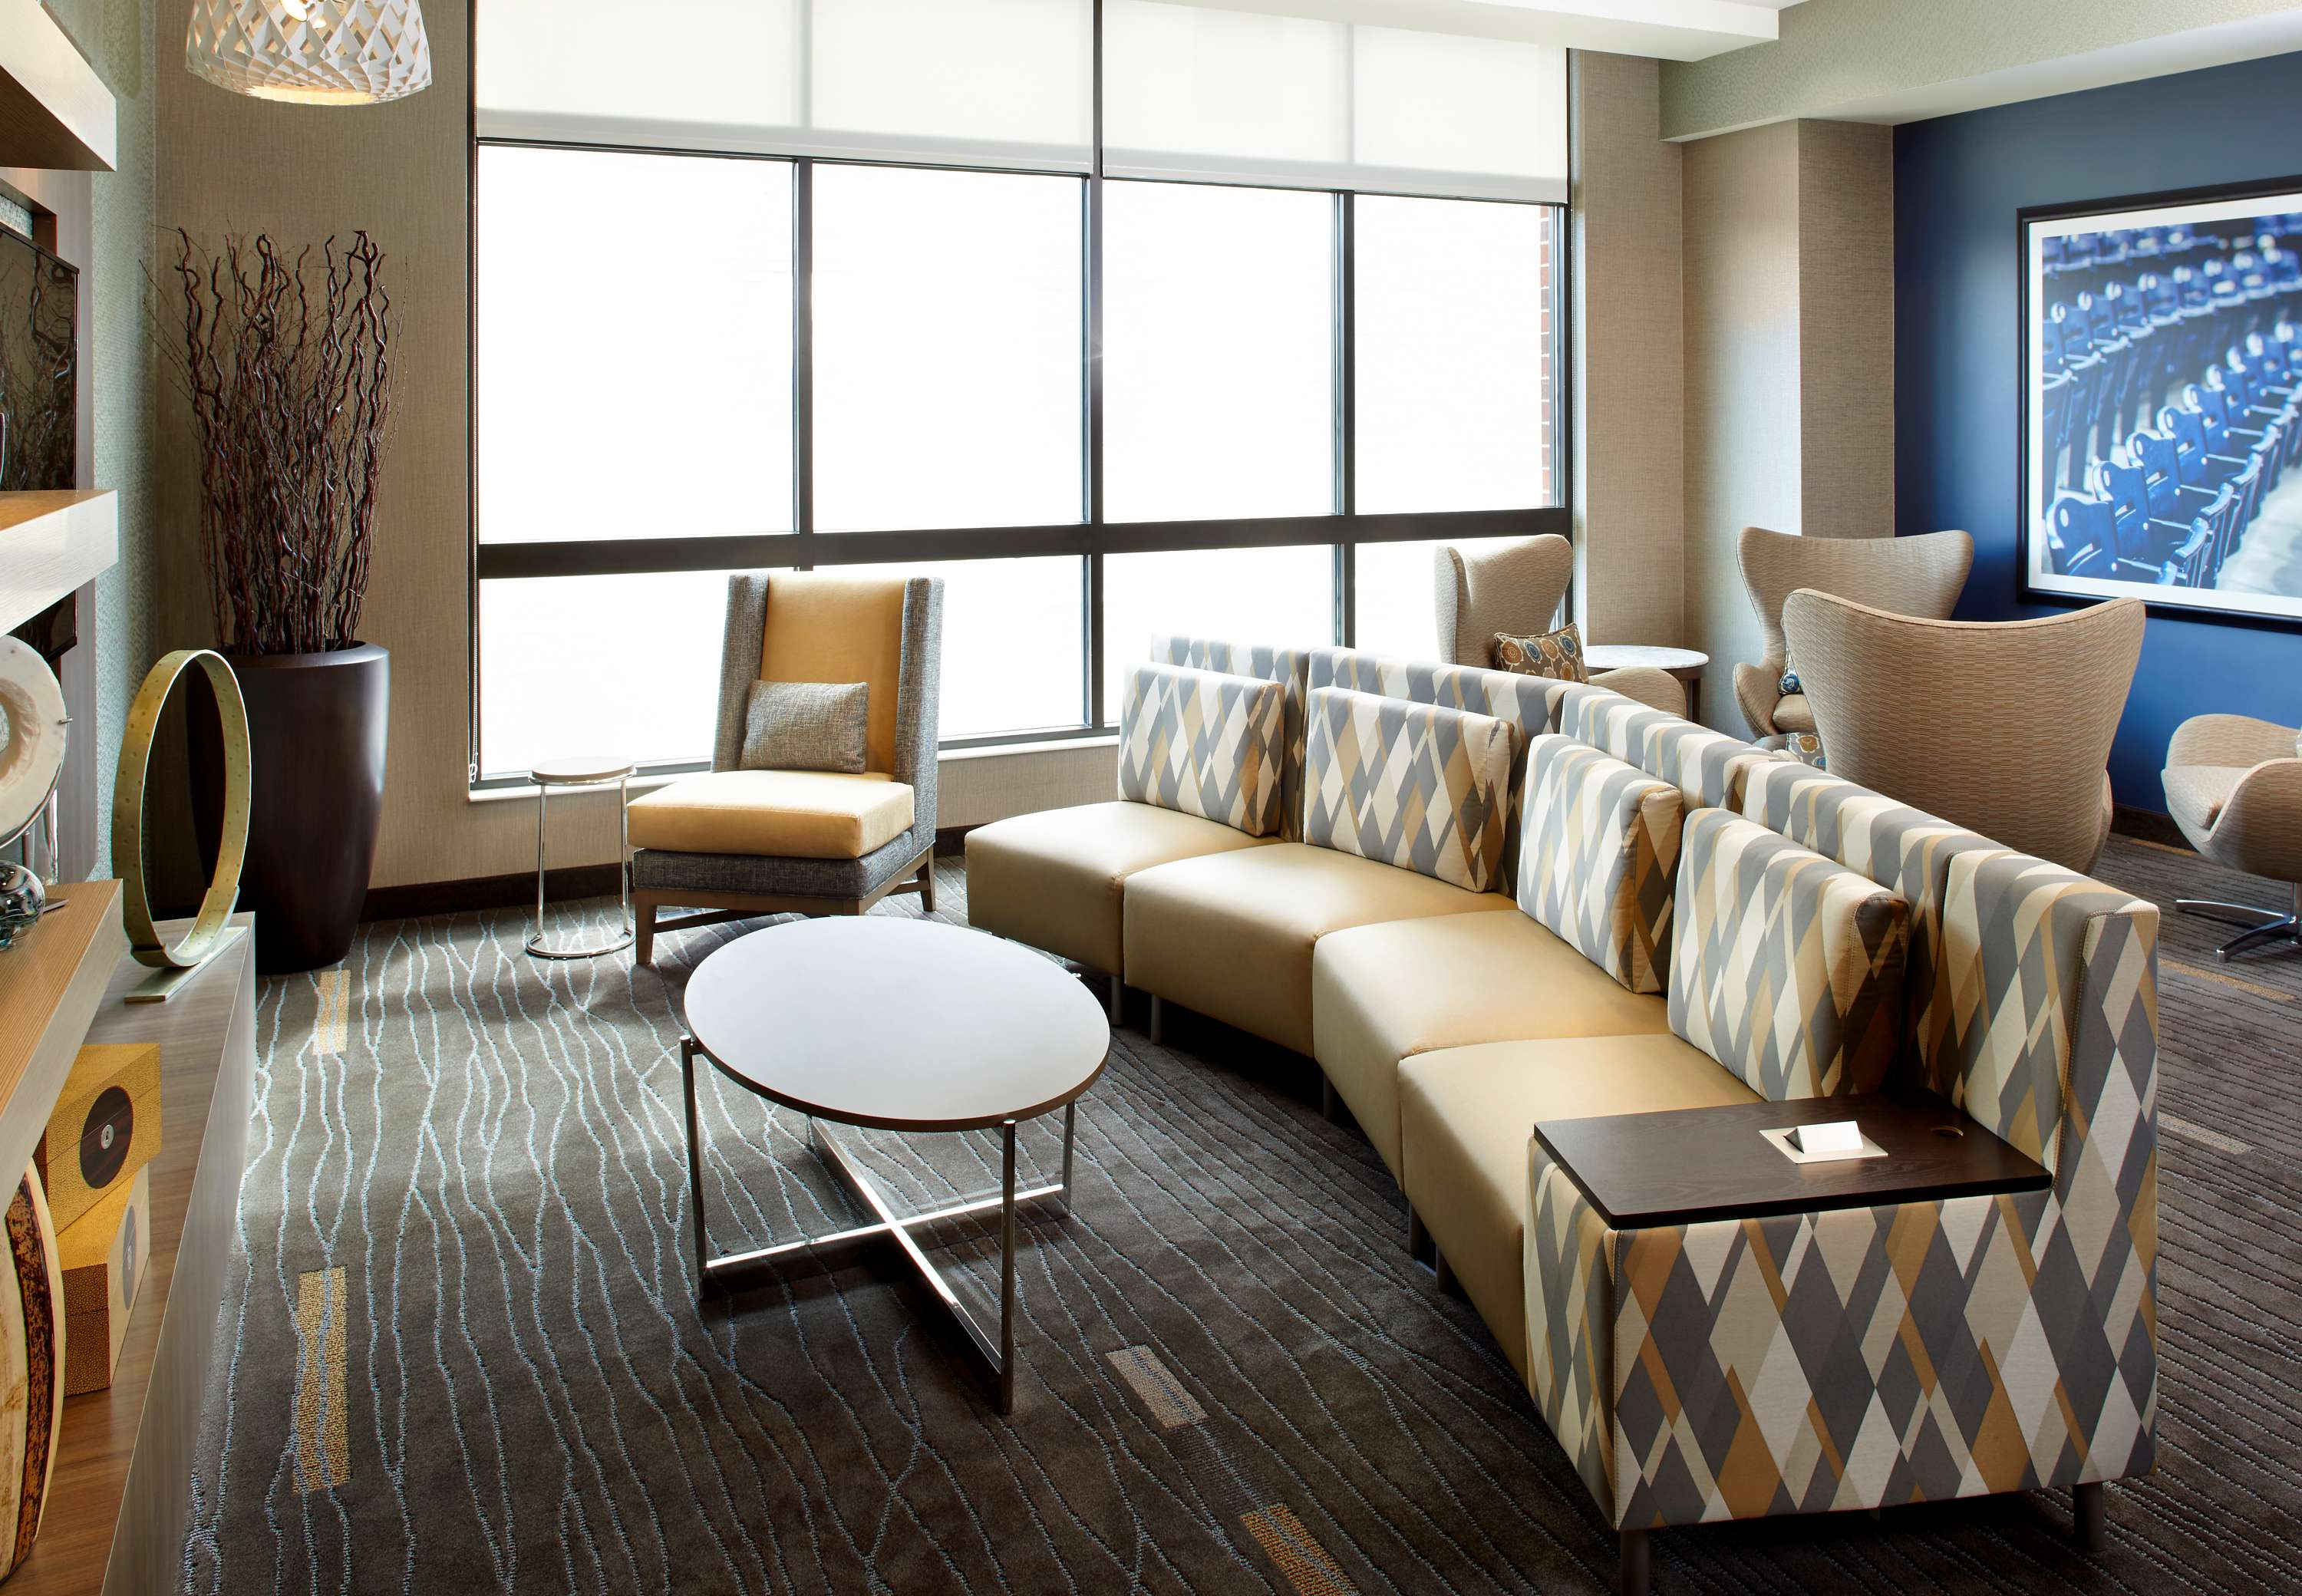 Courtyard by Marriott Akron Downtown image 0